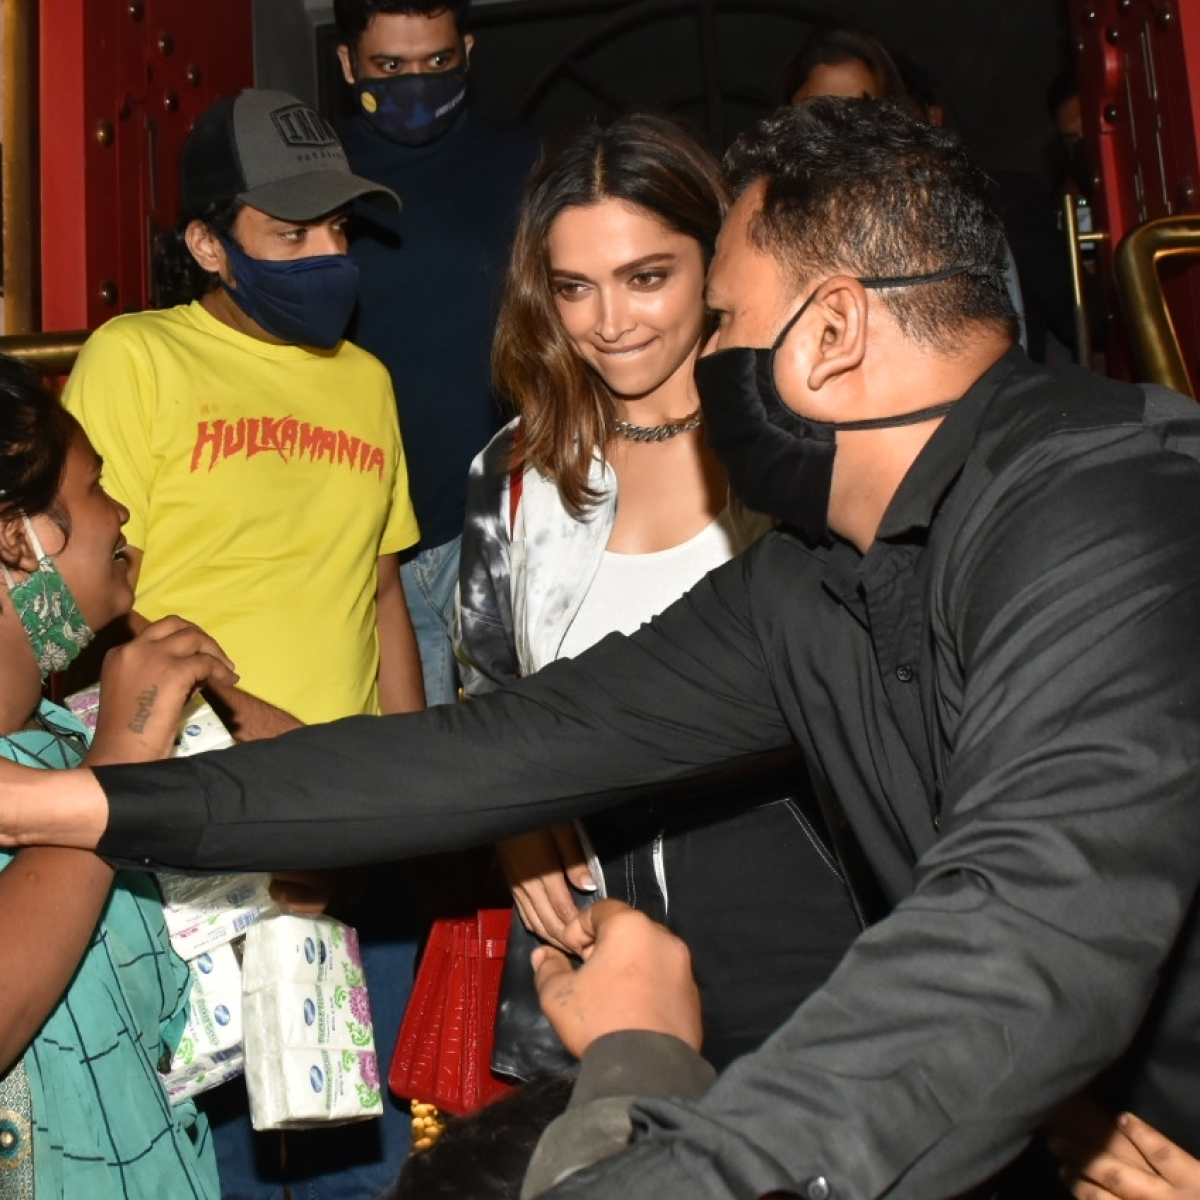 Watch: Woman tries to pull Deepika Padukone's Rs 1.6 lakh purse in viral video